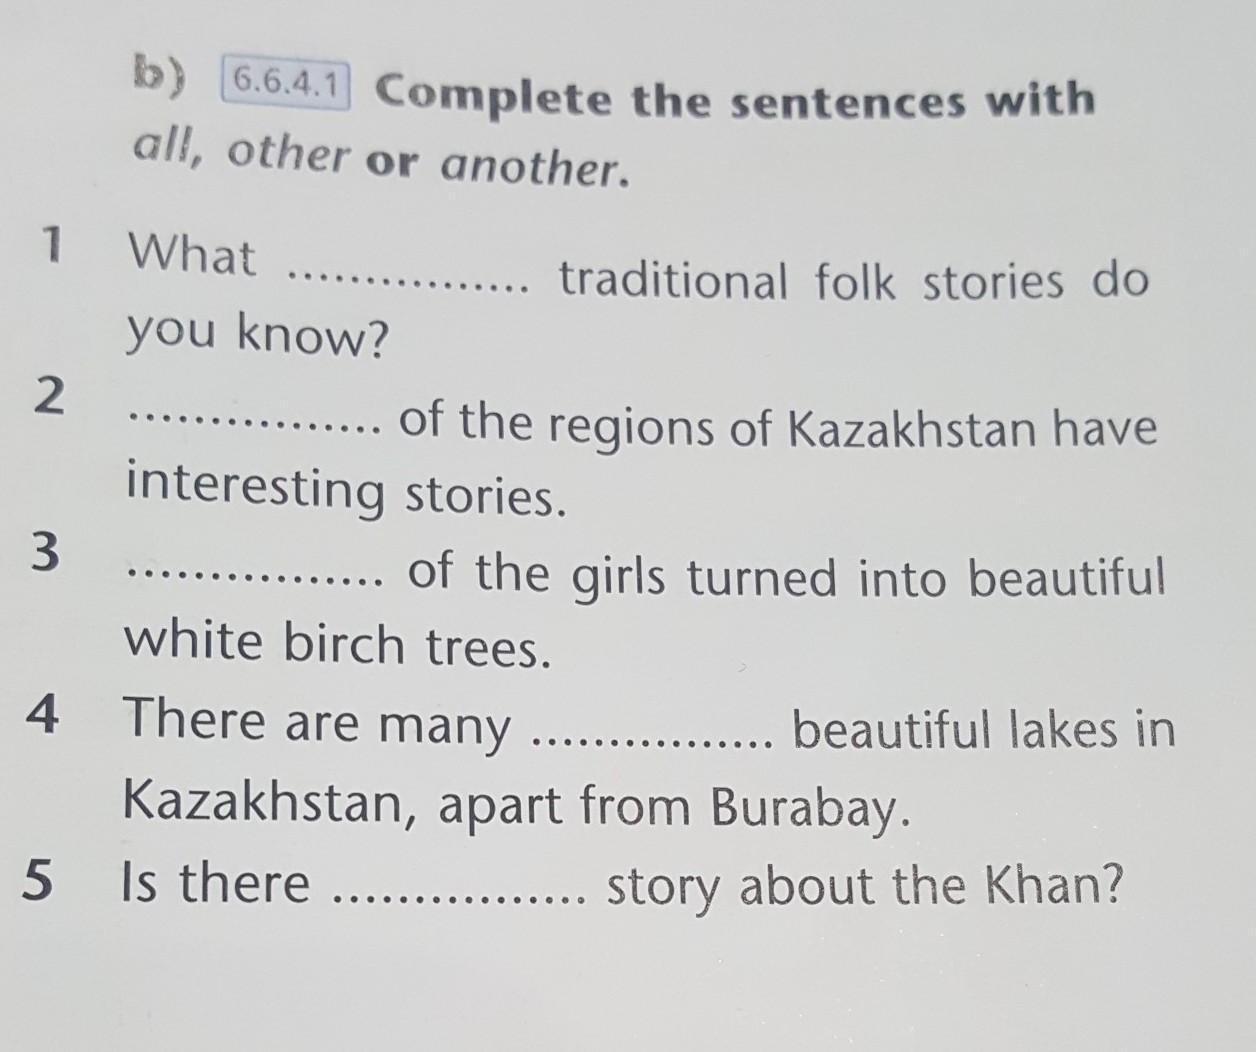 Complete the sentences with all, other or another.